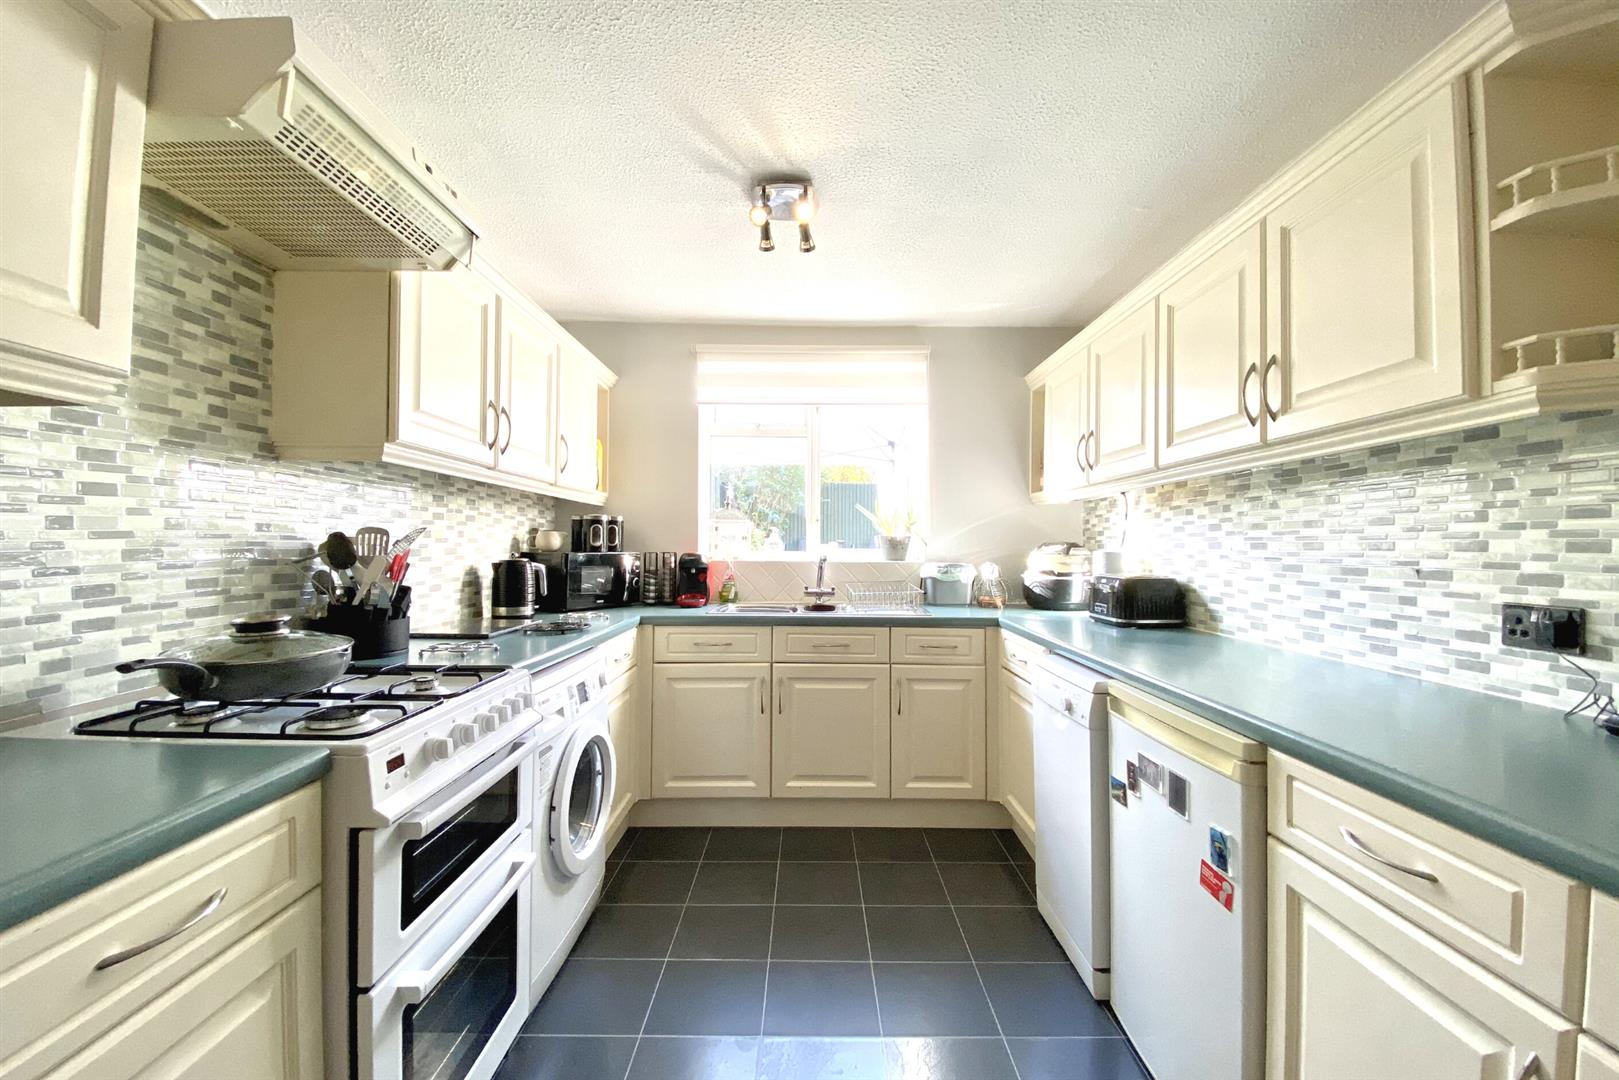 3 bed end of terrace for sale in Lower Earley  - Property Image 6